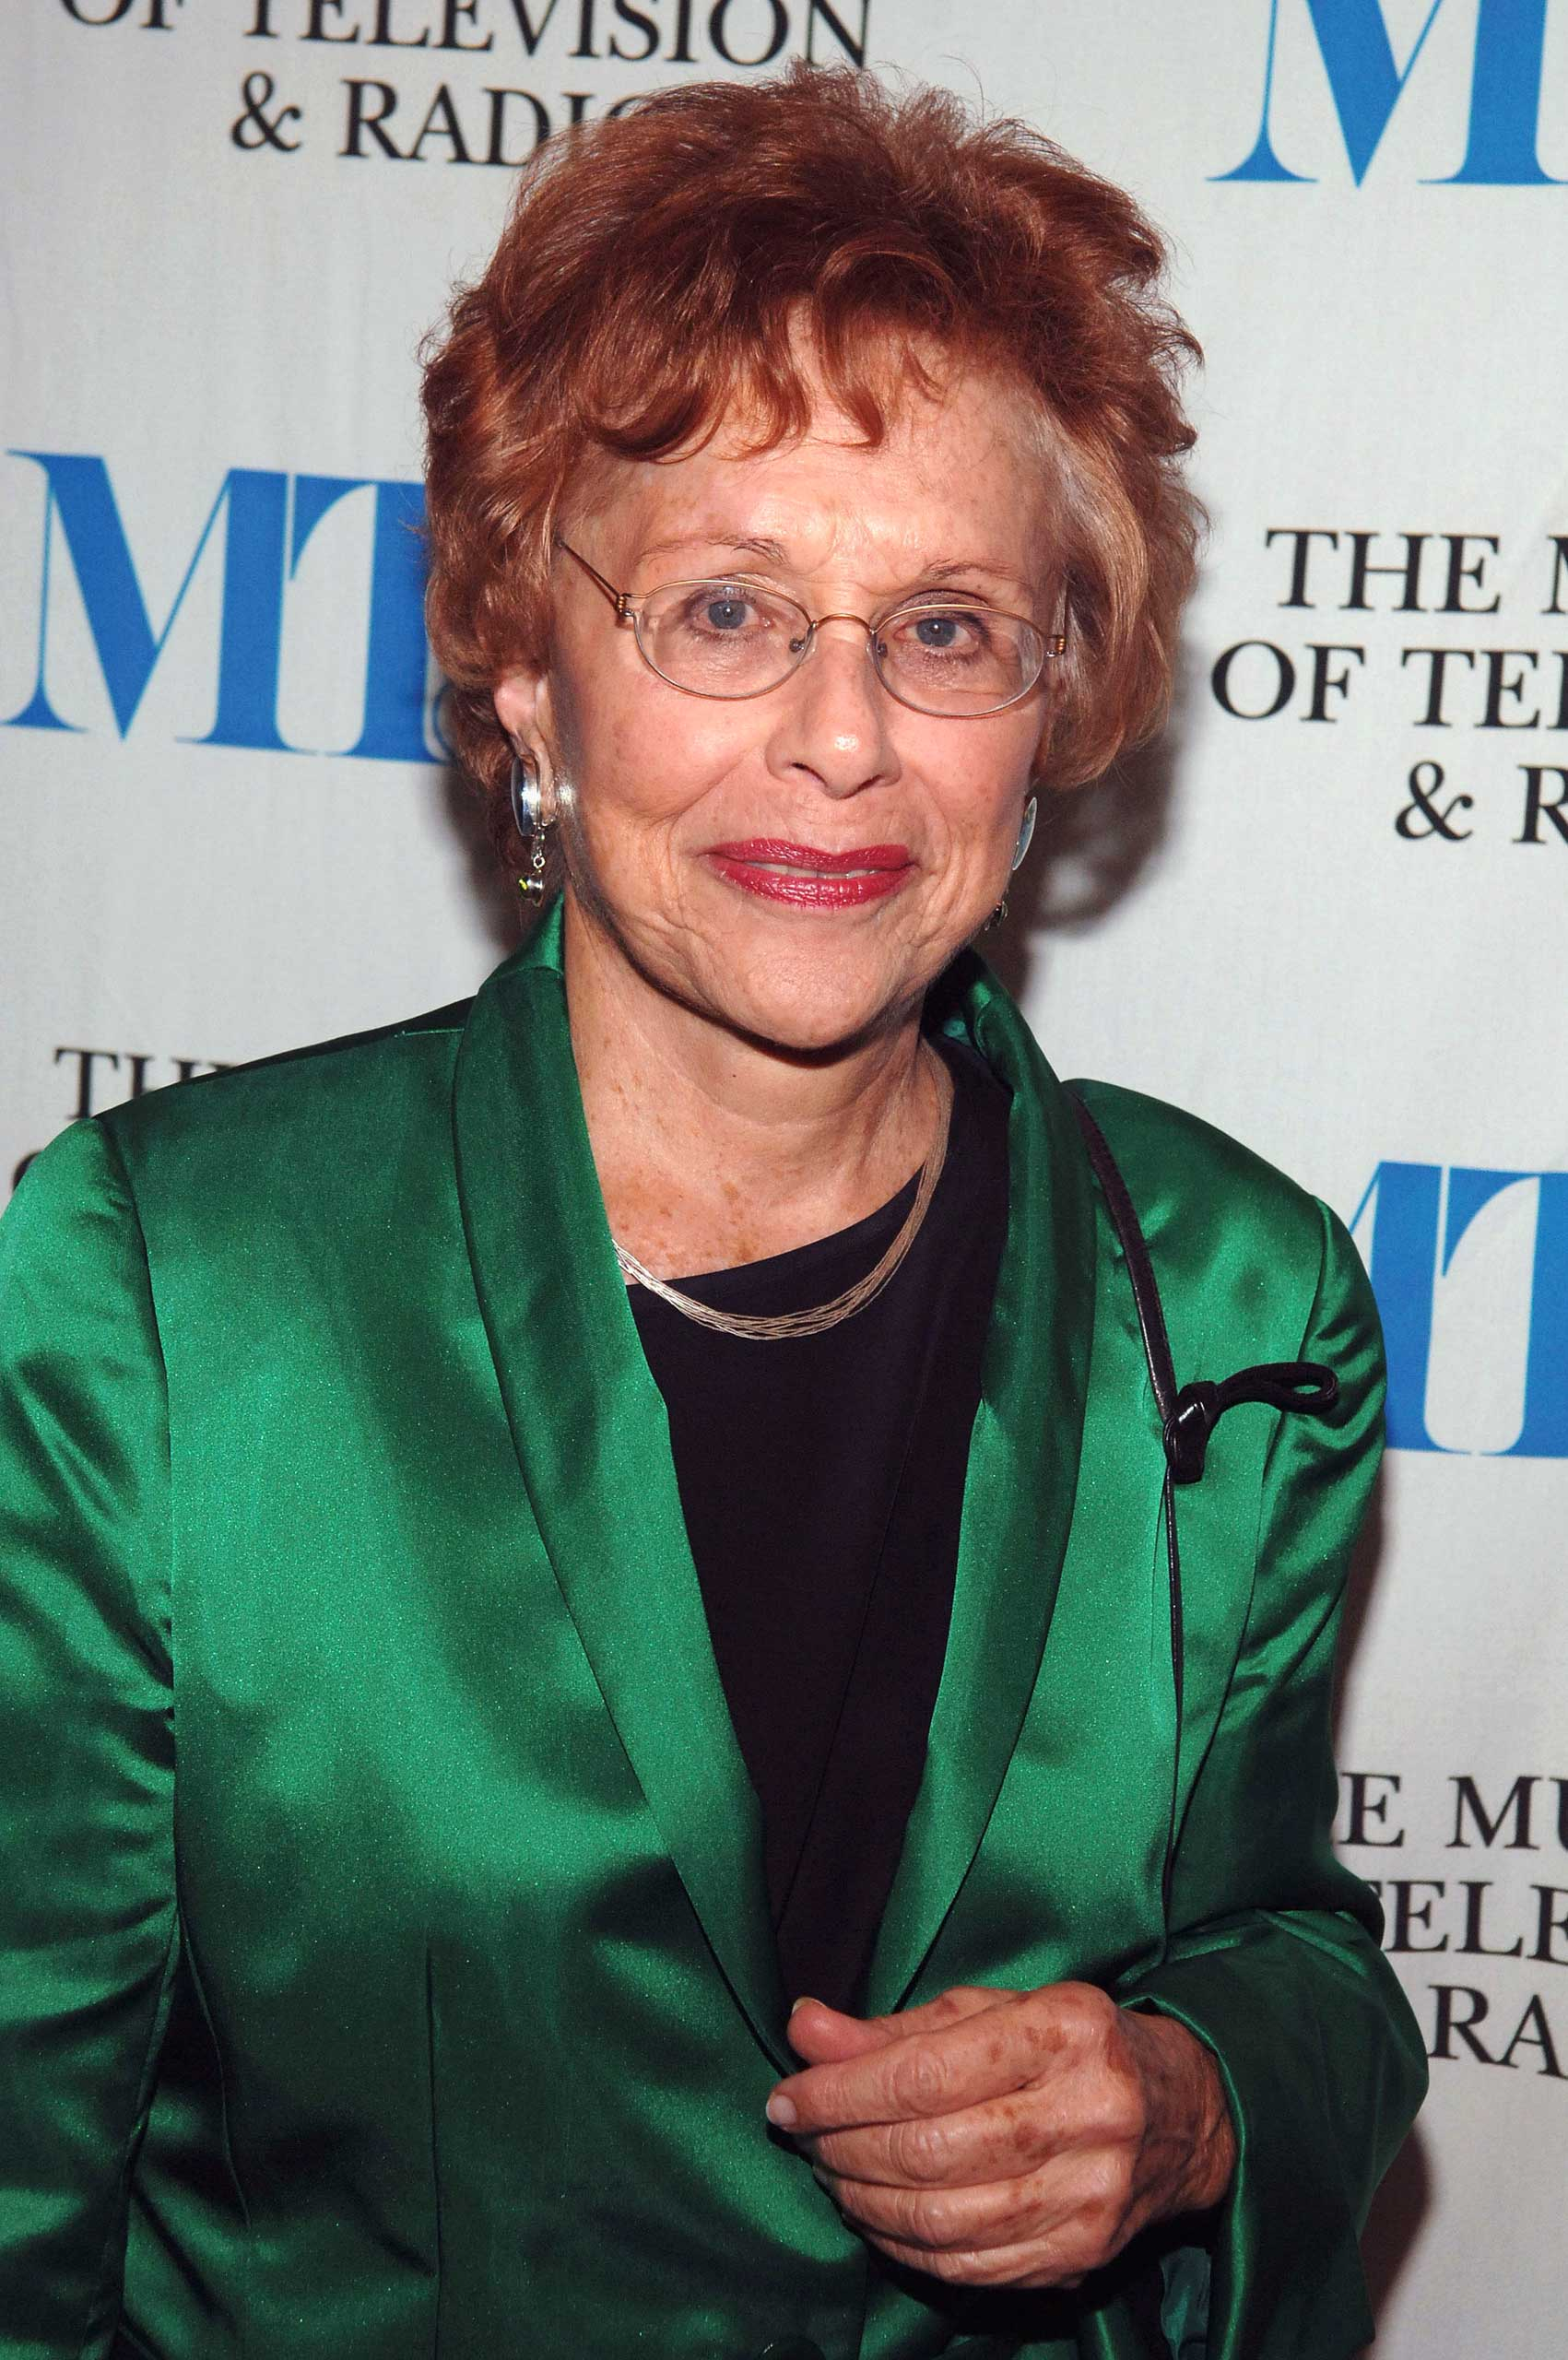 Journalist Marlene Sanders at an event in New York in 2005.